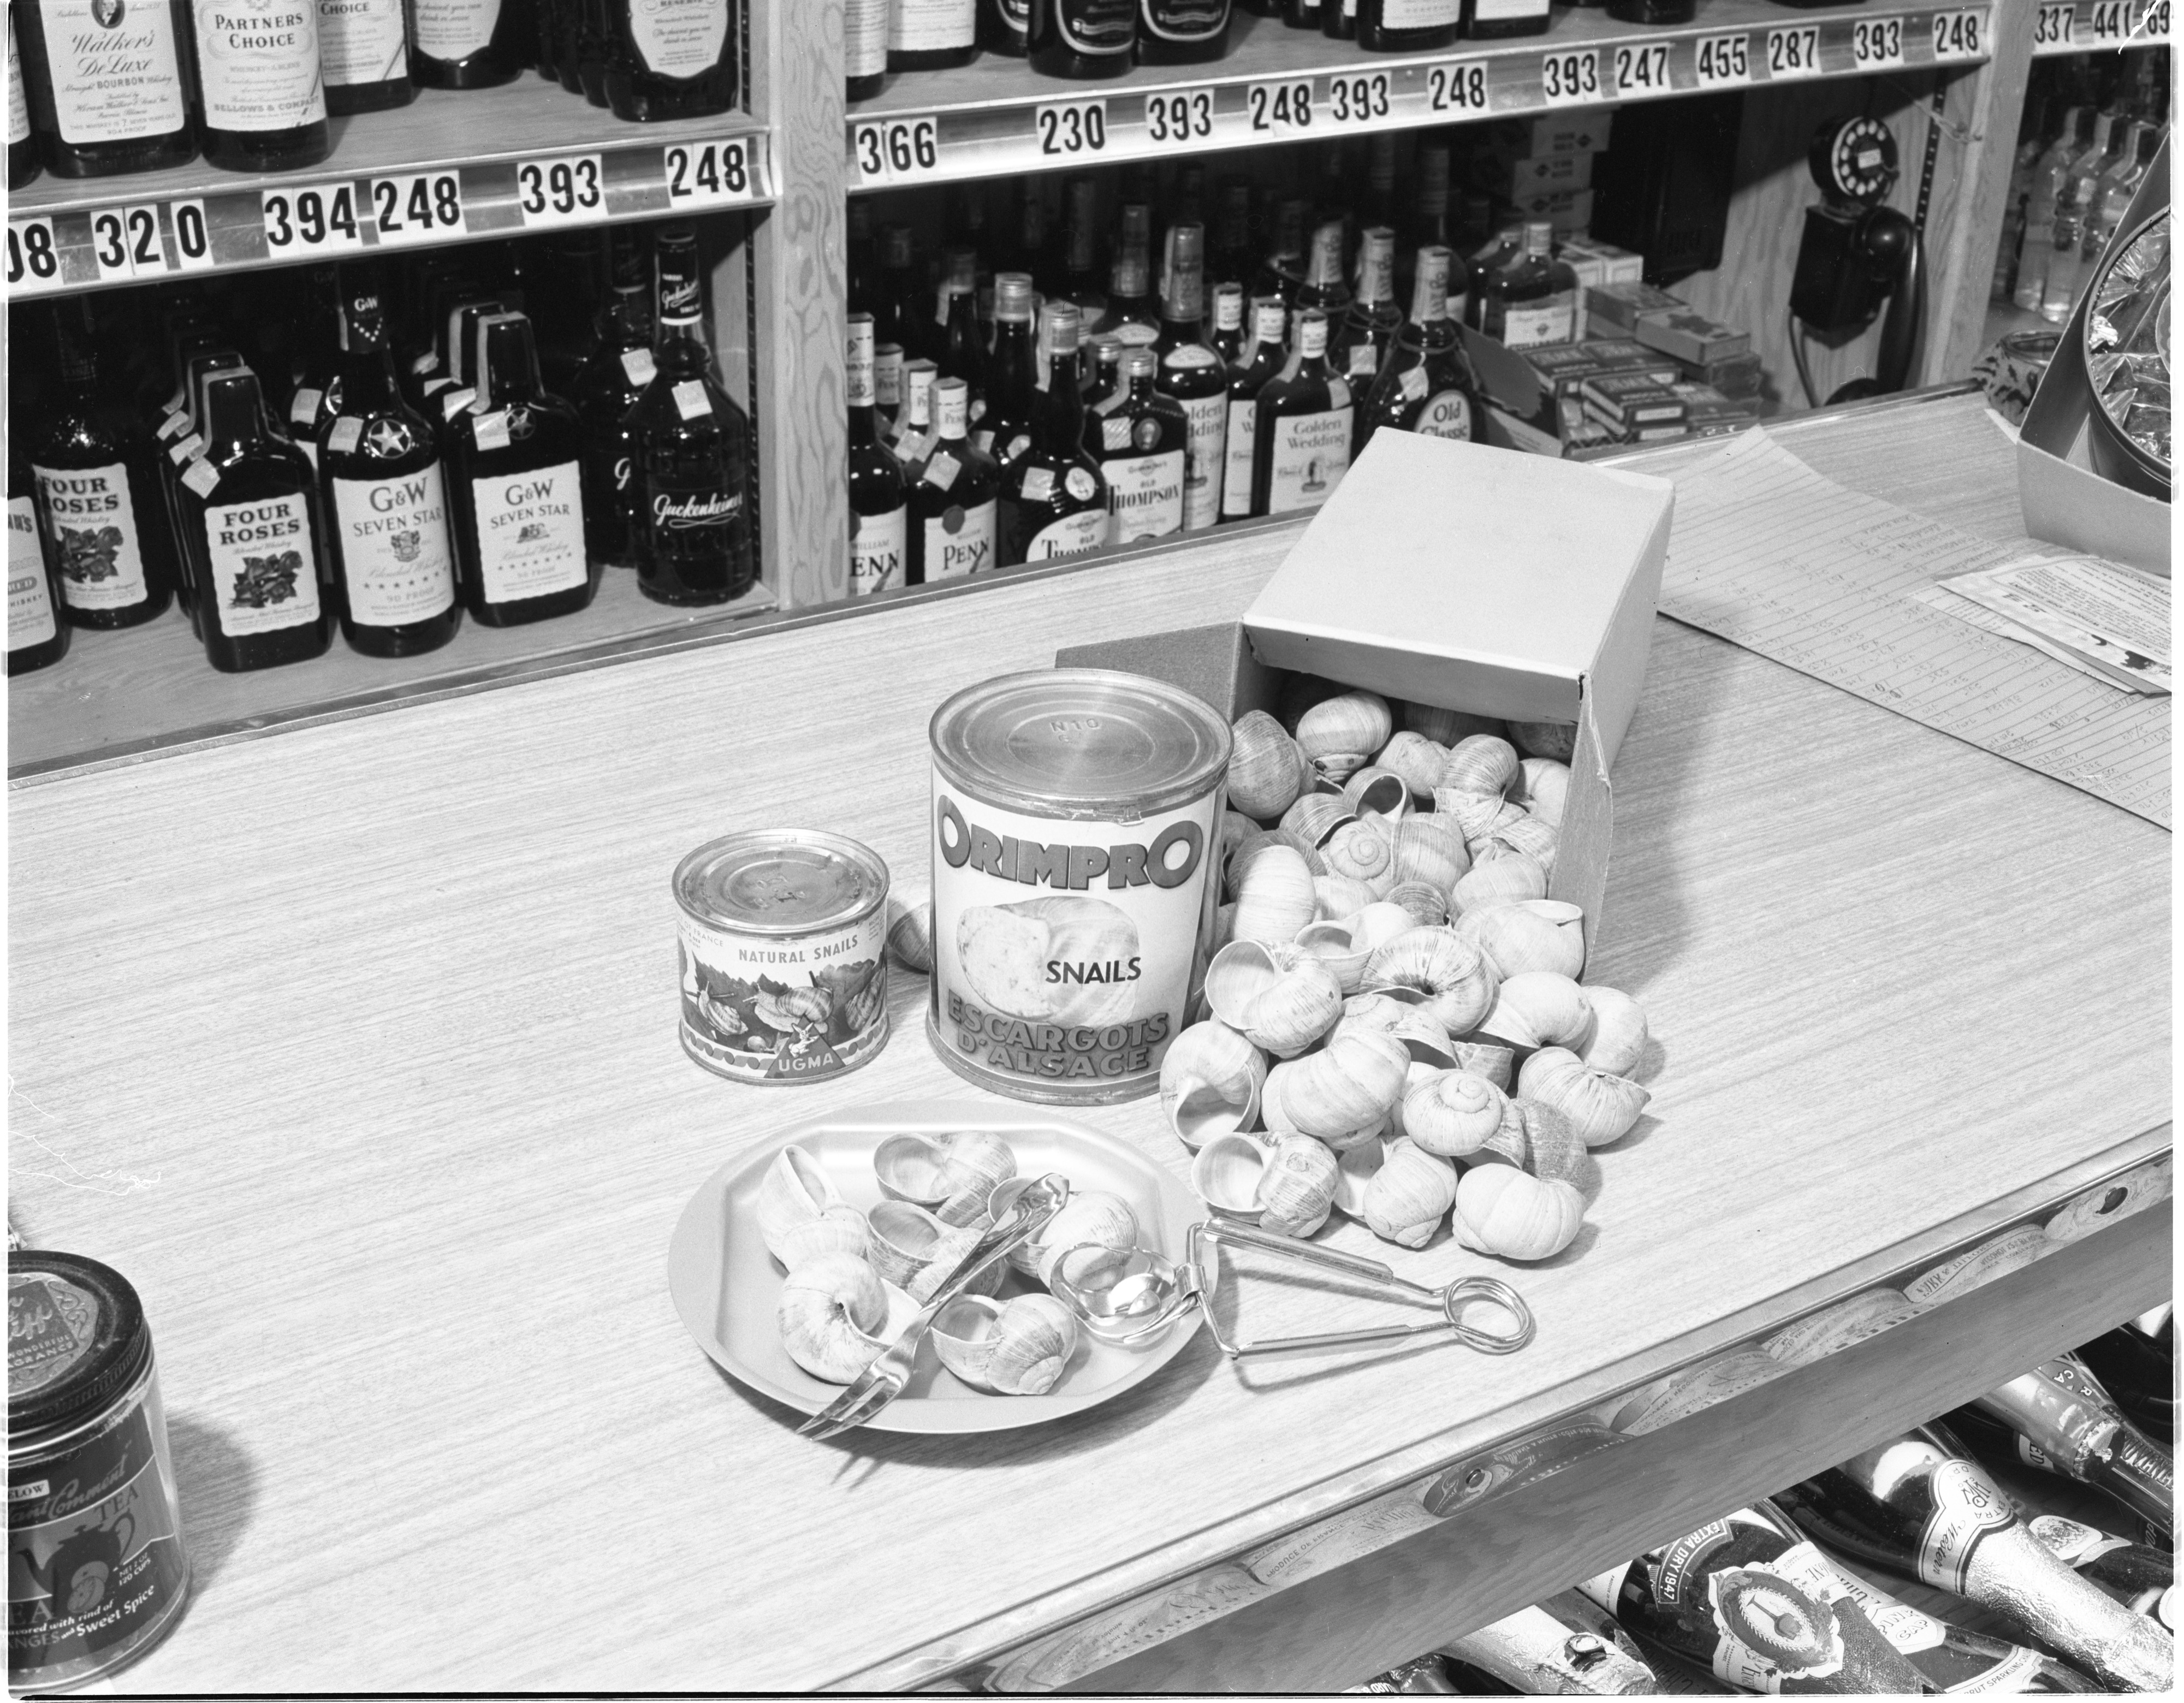 Liquor & Snails Display At Big Ten Party Store, November 1955 image